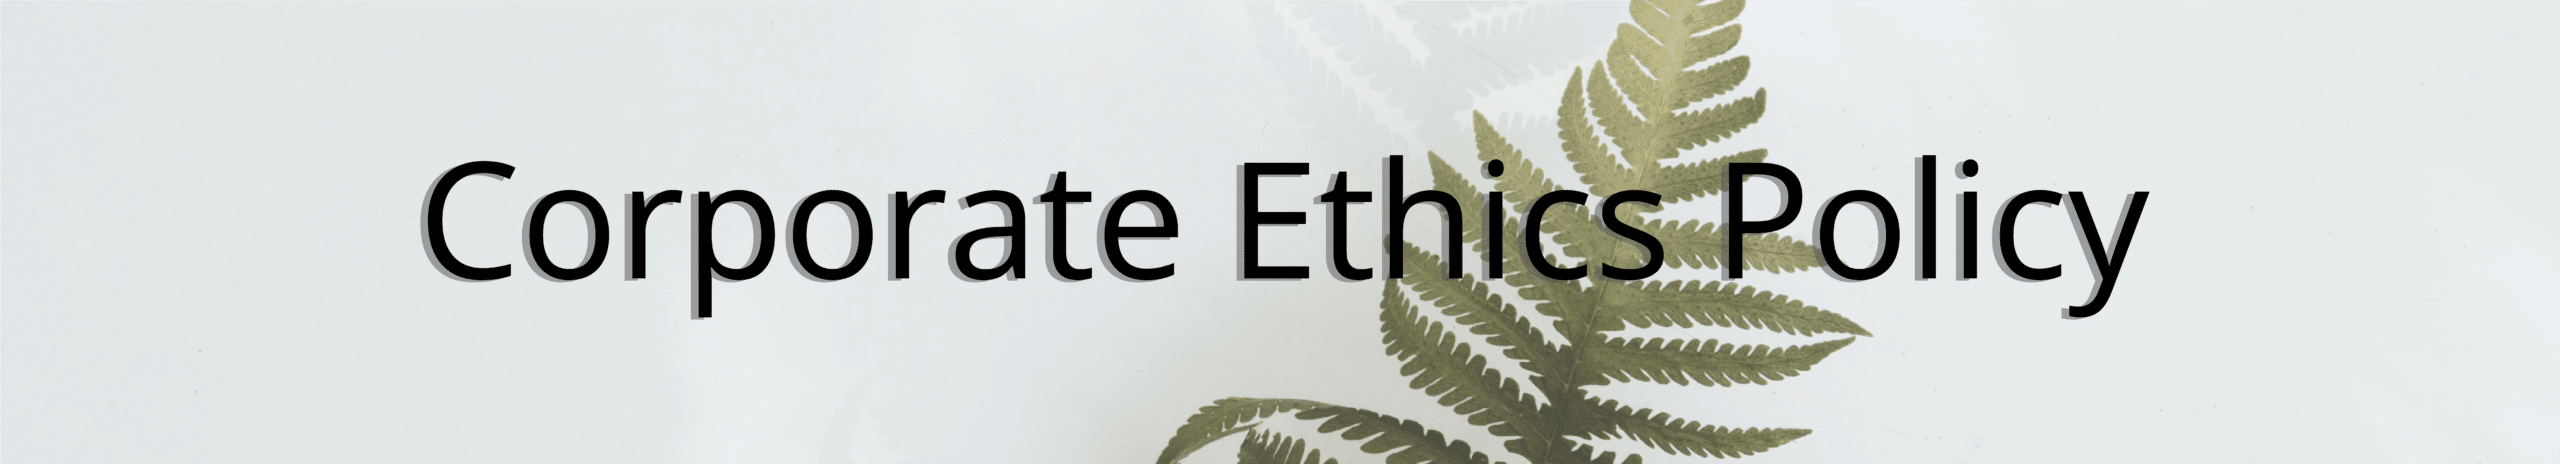 Corporate Ethics Header - An image of a fern against a blank wall with the words corporate ethics policy overlaid on top.